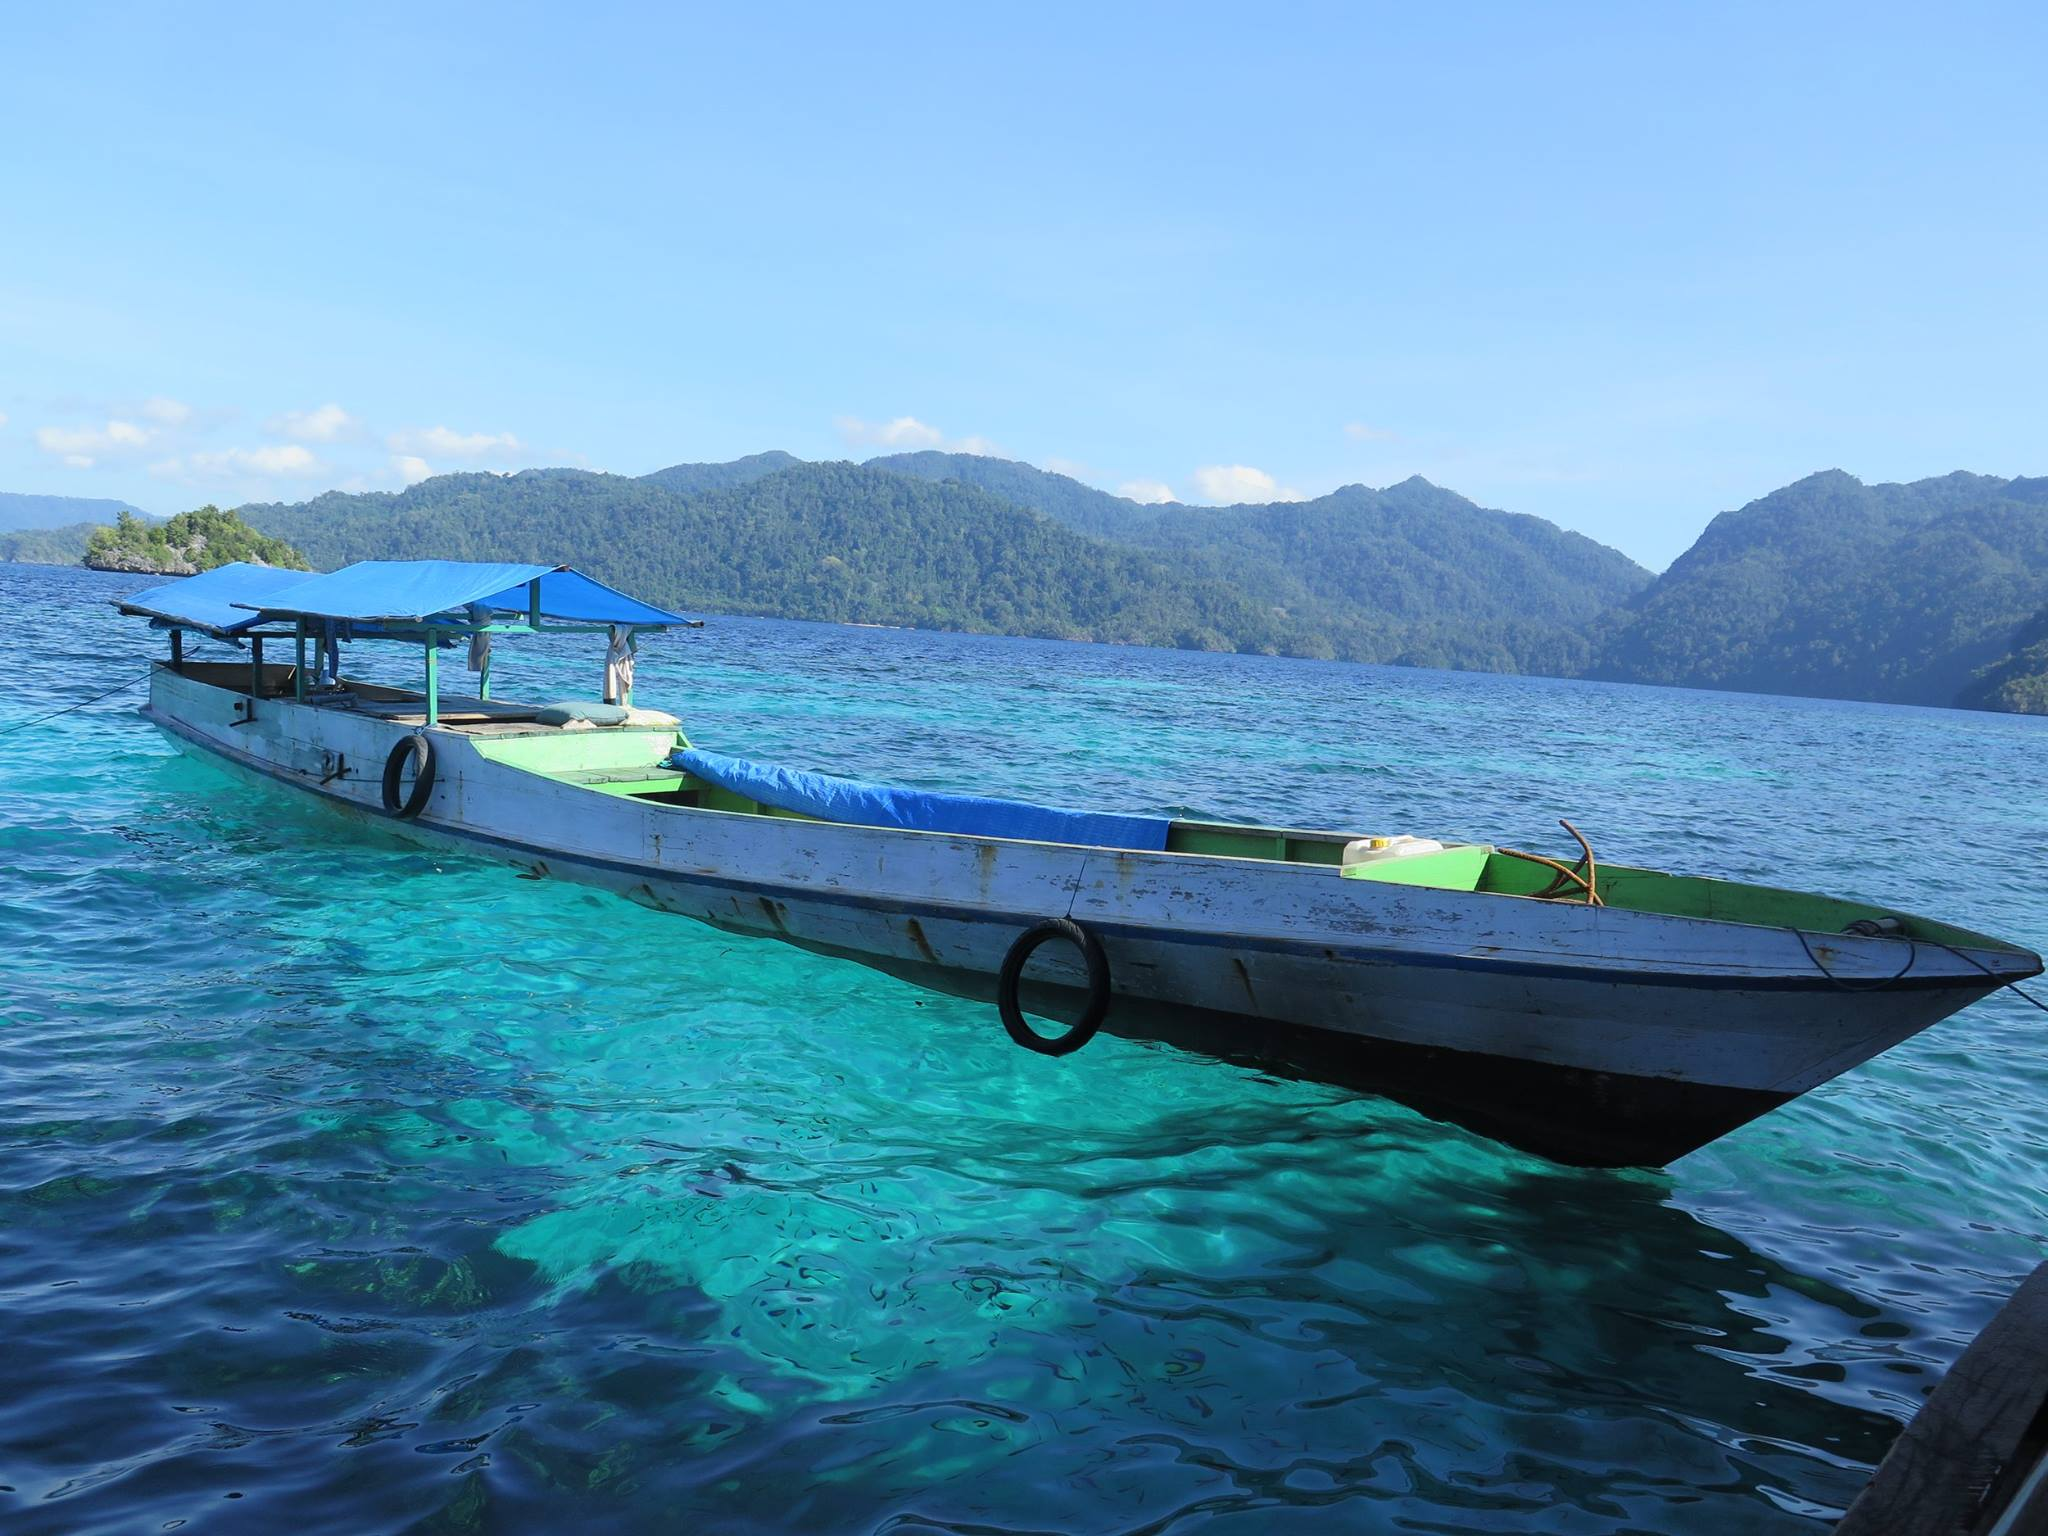 labengki-best-place-in-the-world-to-scuba-dive-with-easy-diving-pratice